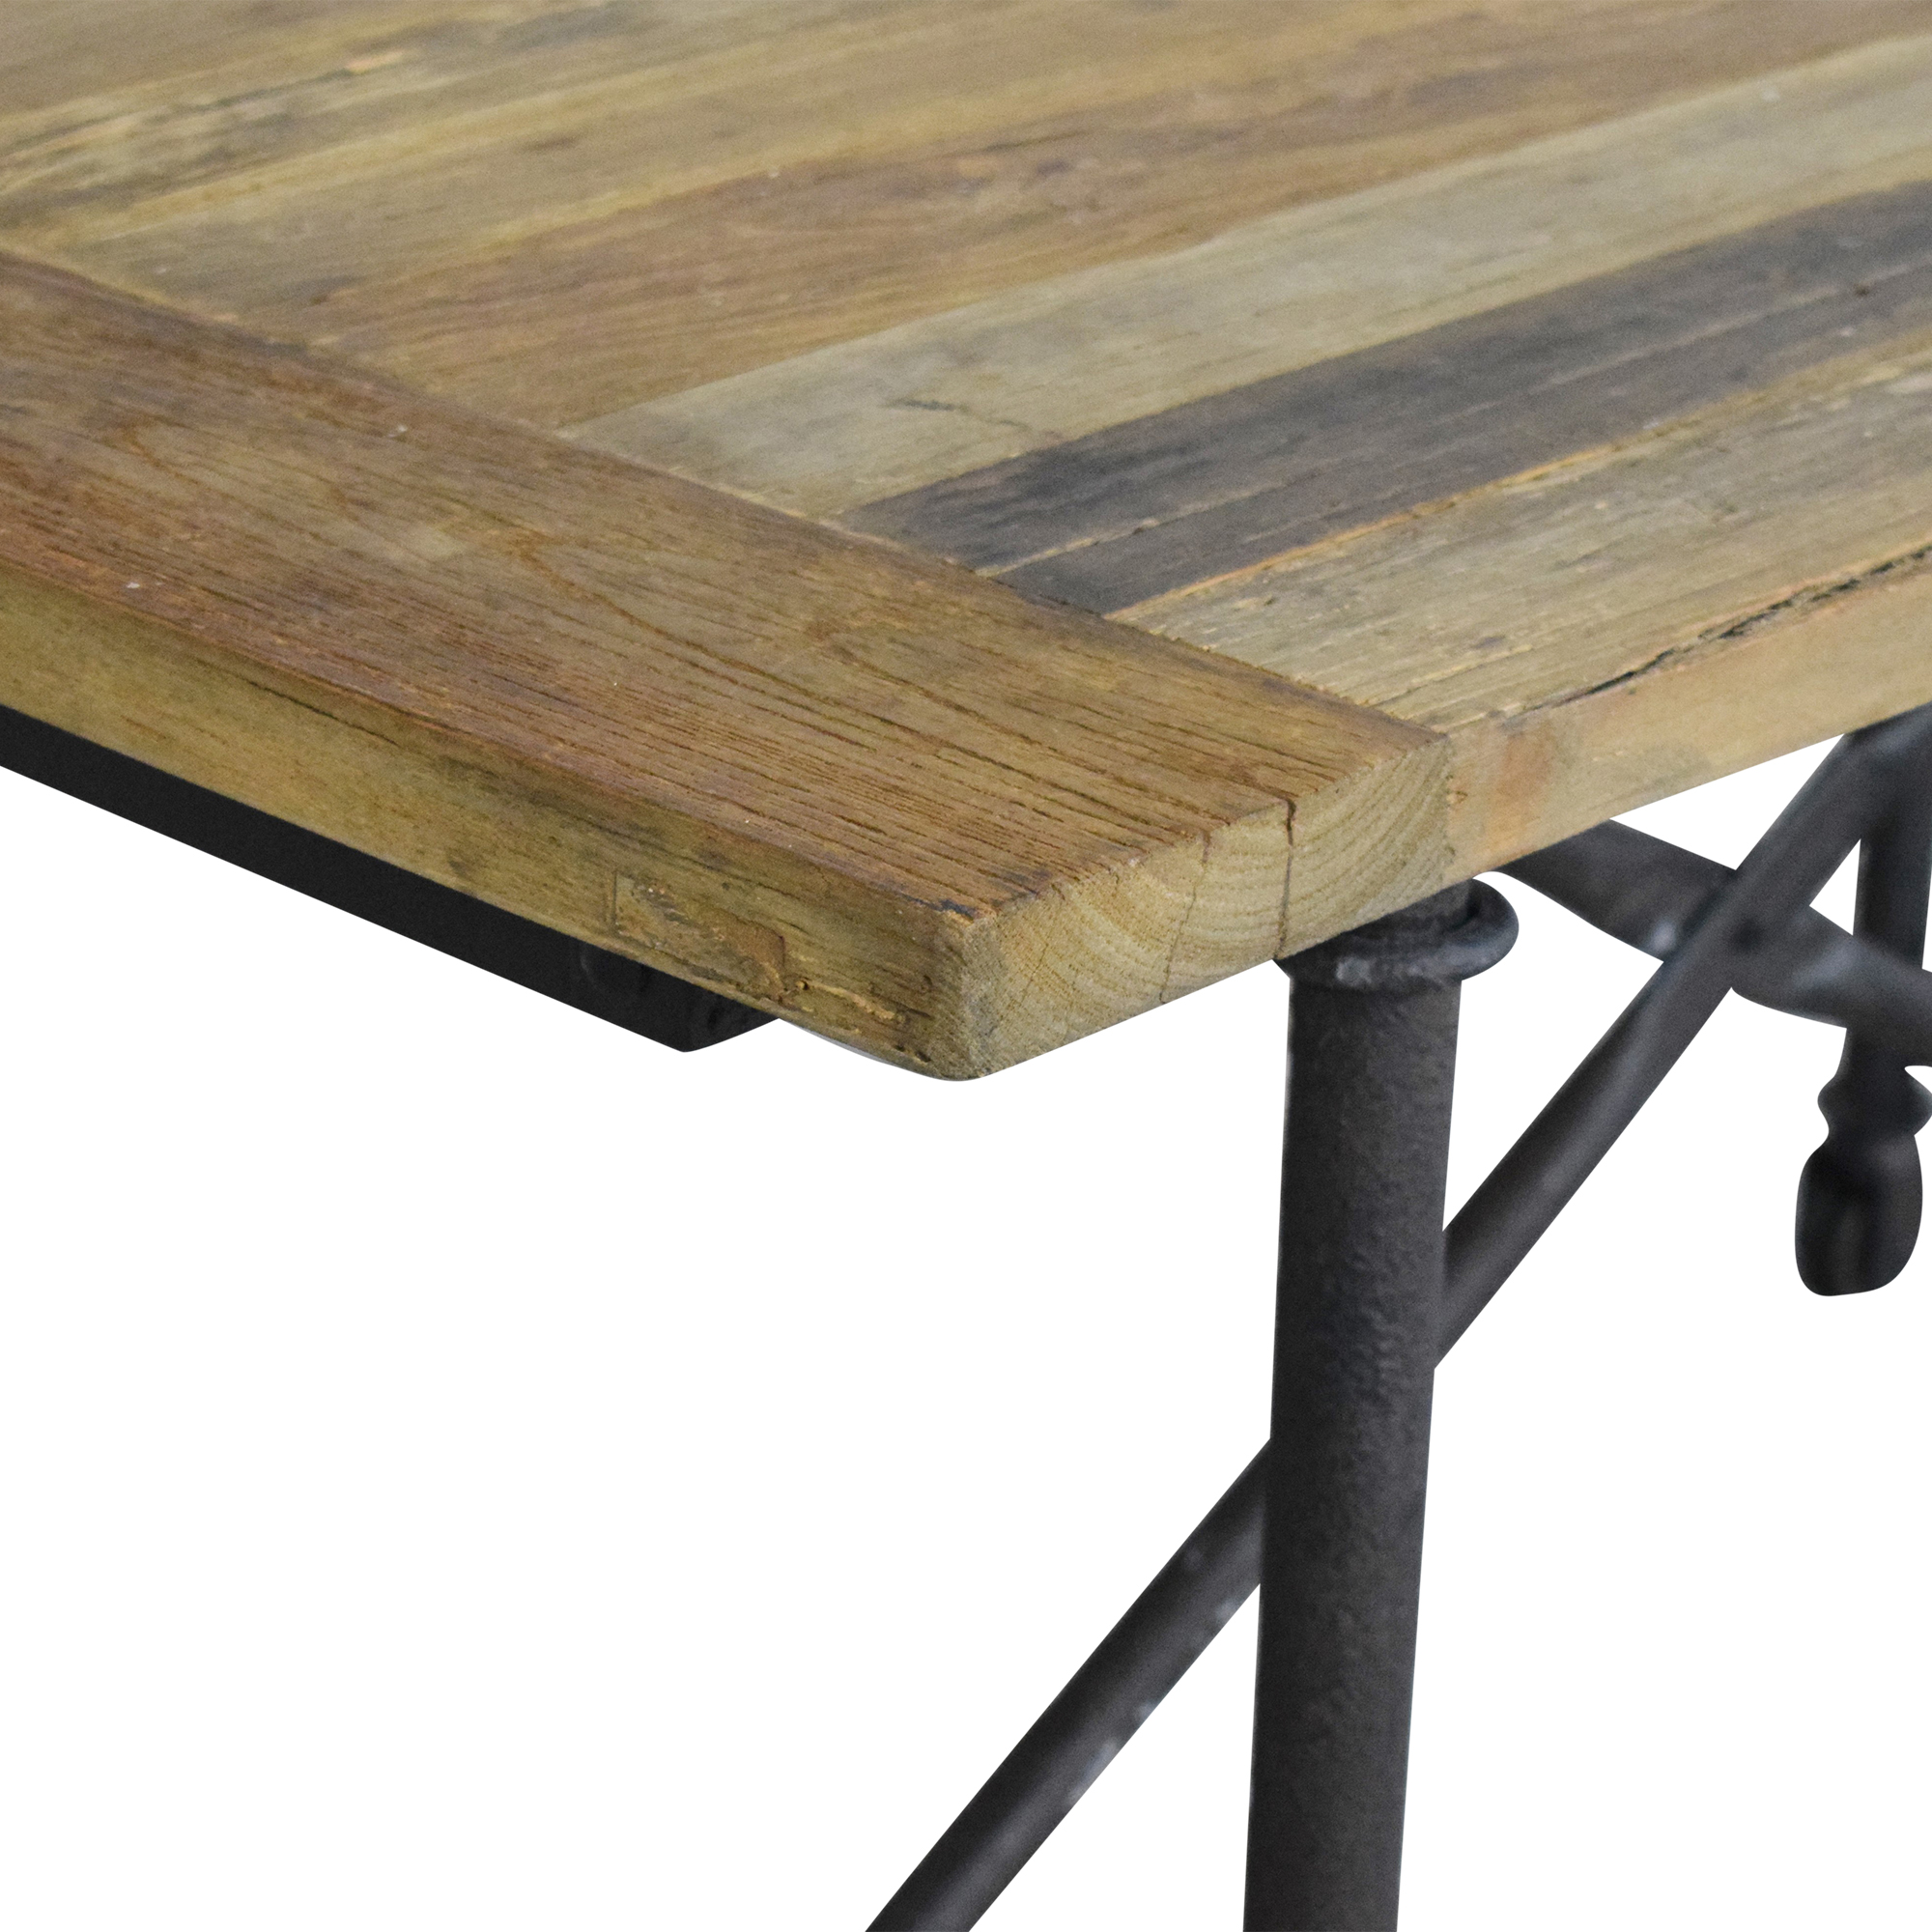 Restoration Hardware Restoration Hardware Flatiron Rectangular Dining Table used